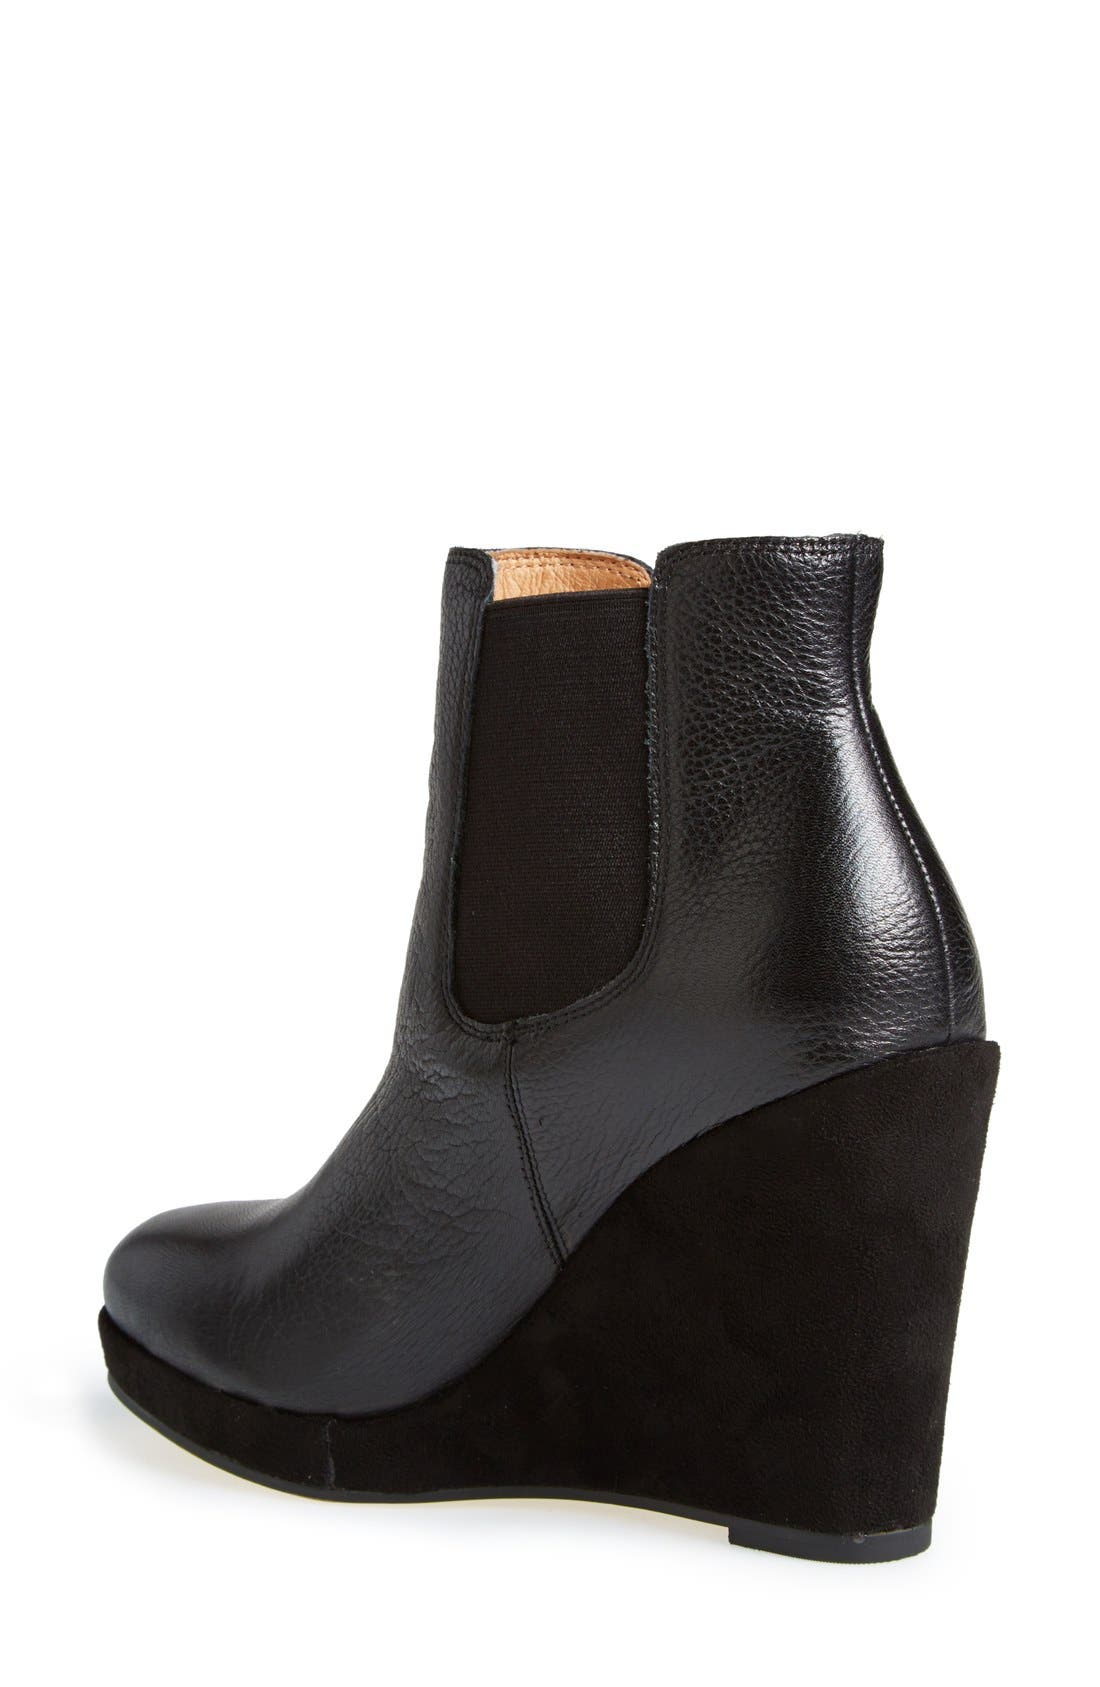 CORSO COMO,                             Corso Como 'Coast' Wedge Bootie,                             Alternate thumbnail 4, color,                             001